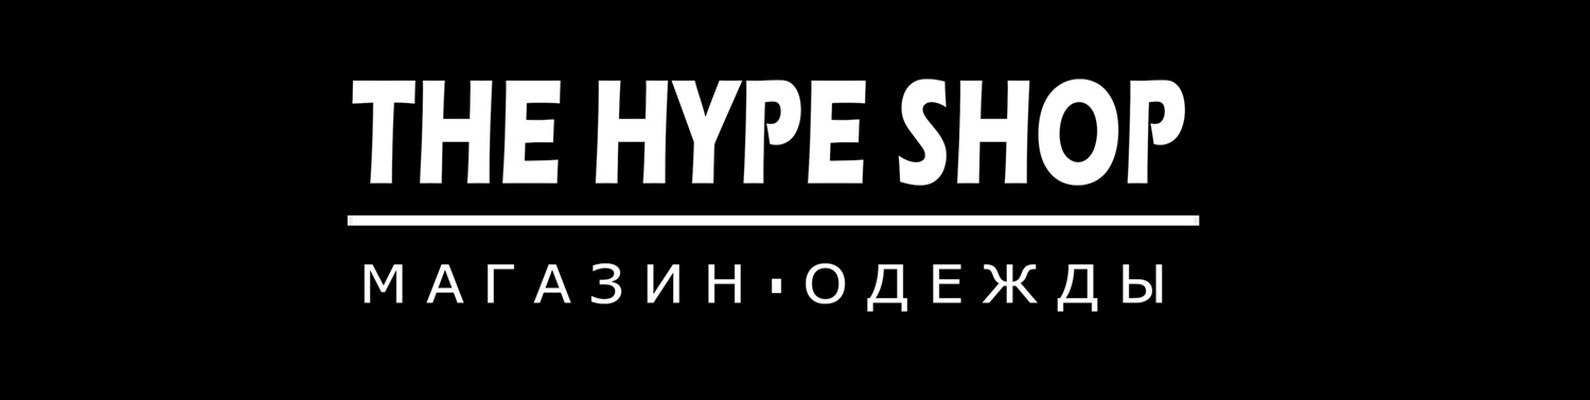 The hyip shop екатеринбург